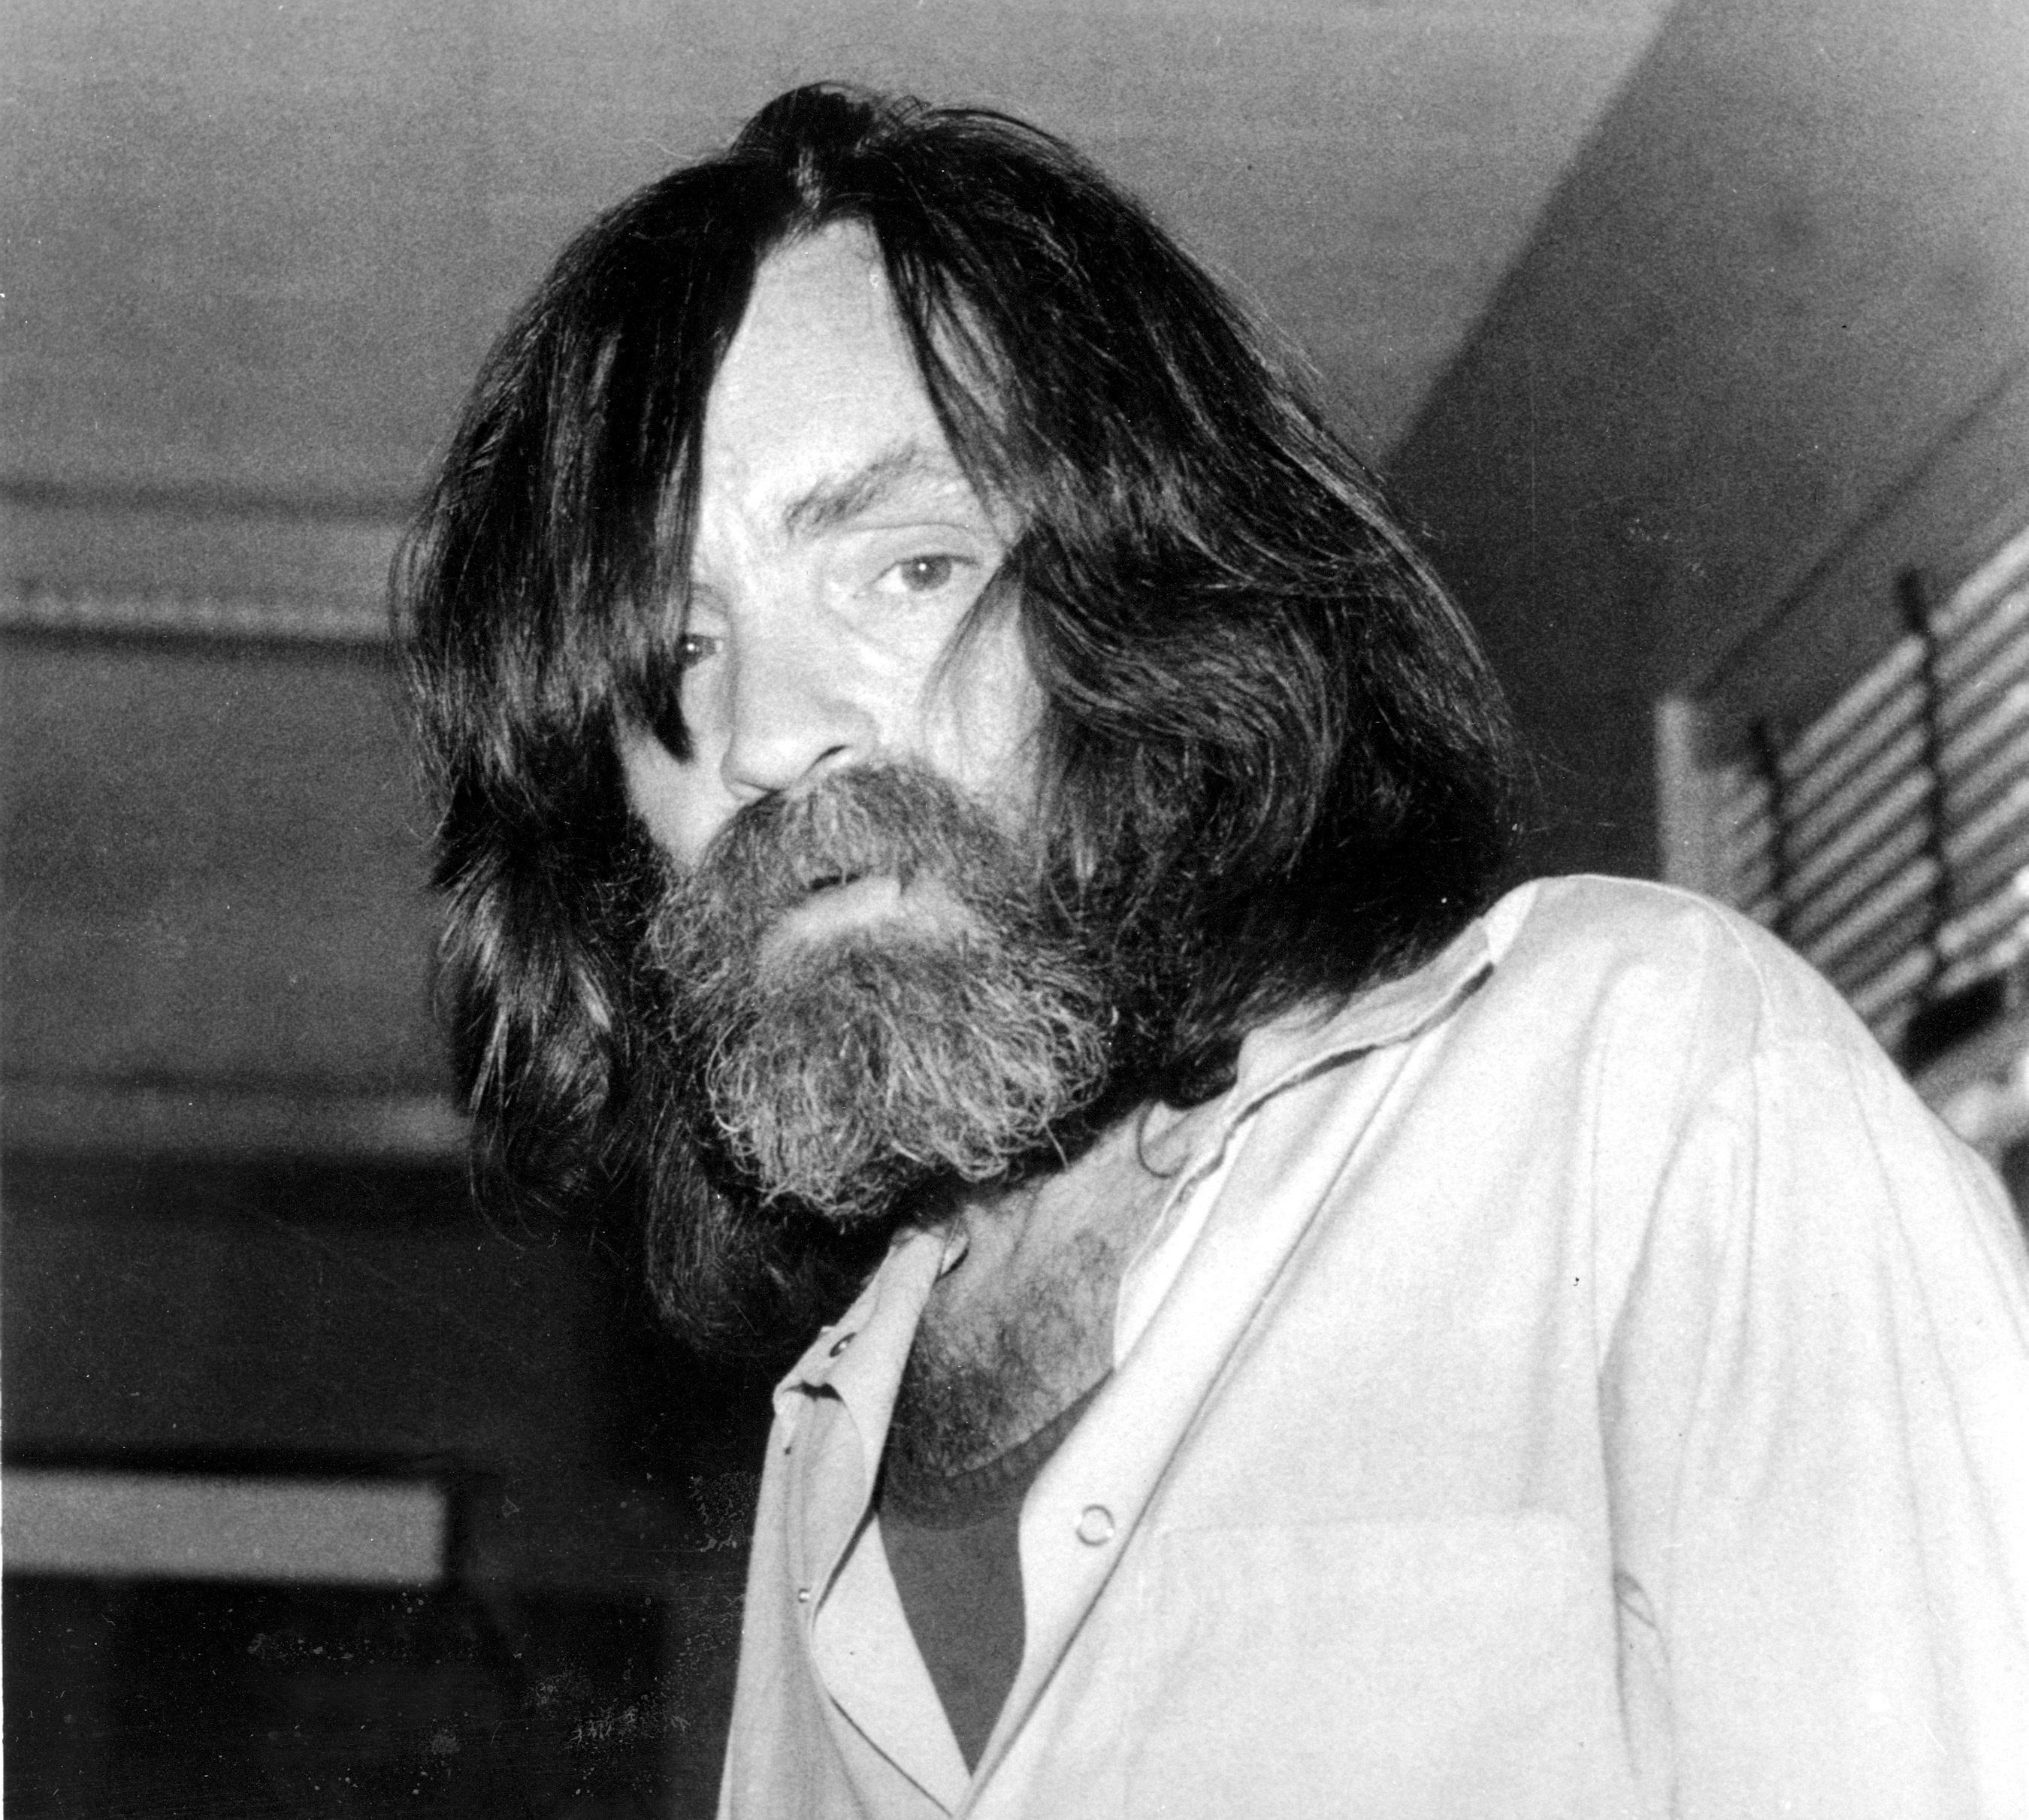 FILE - In this June 10, 1981 file photo, convicted murderer Charles Manson is photographed during an interview with television talk show host Tom Snyder in a medical facility in Vacaville, Calif. (AP Photo, File)<p></p>